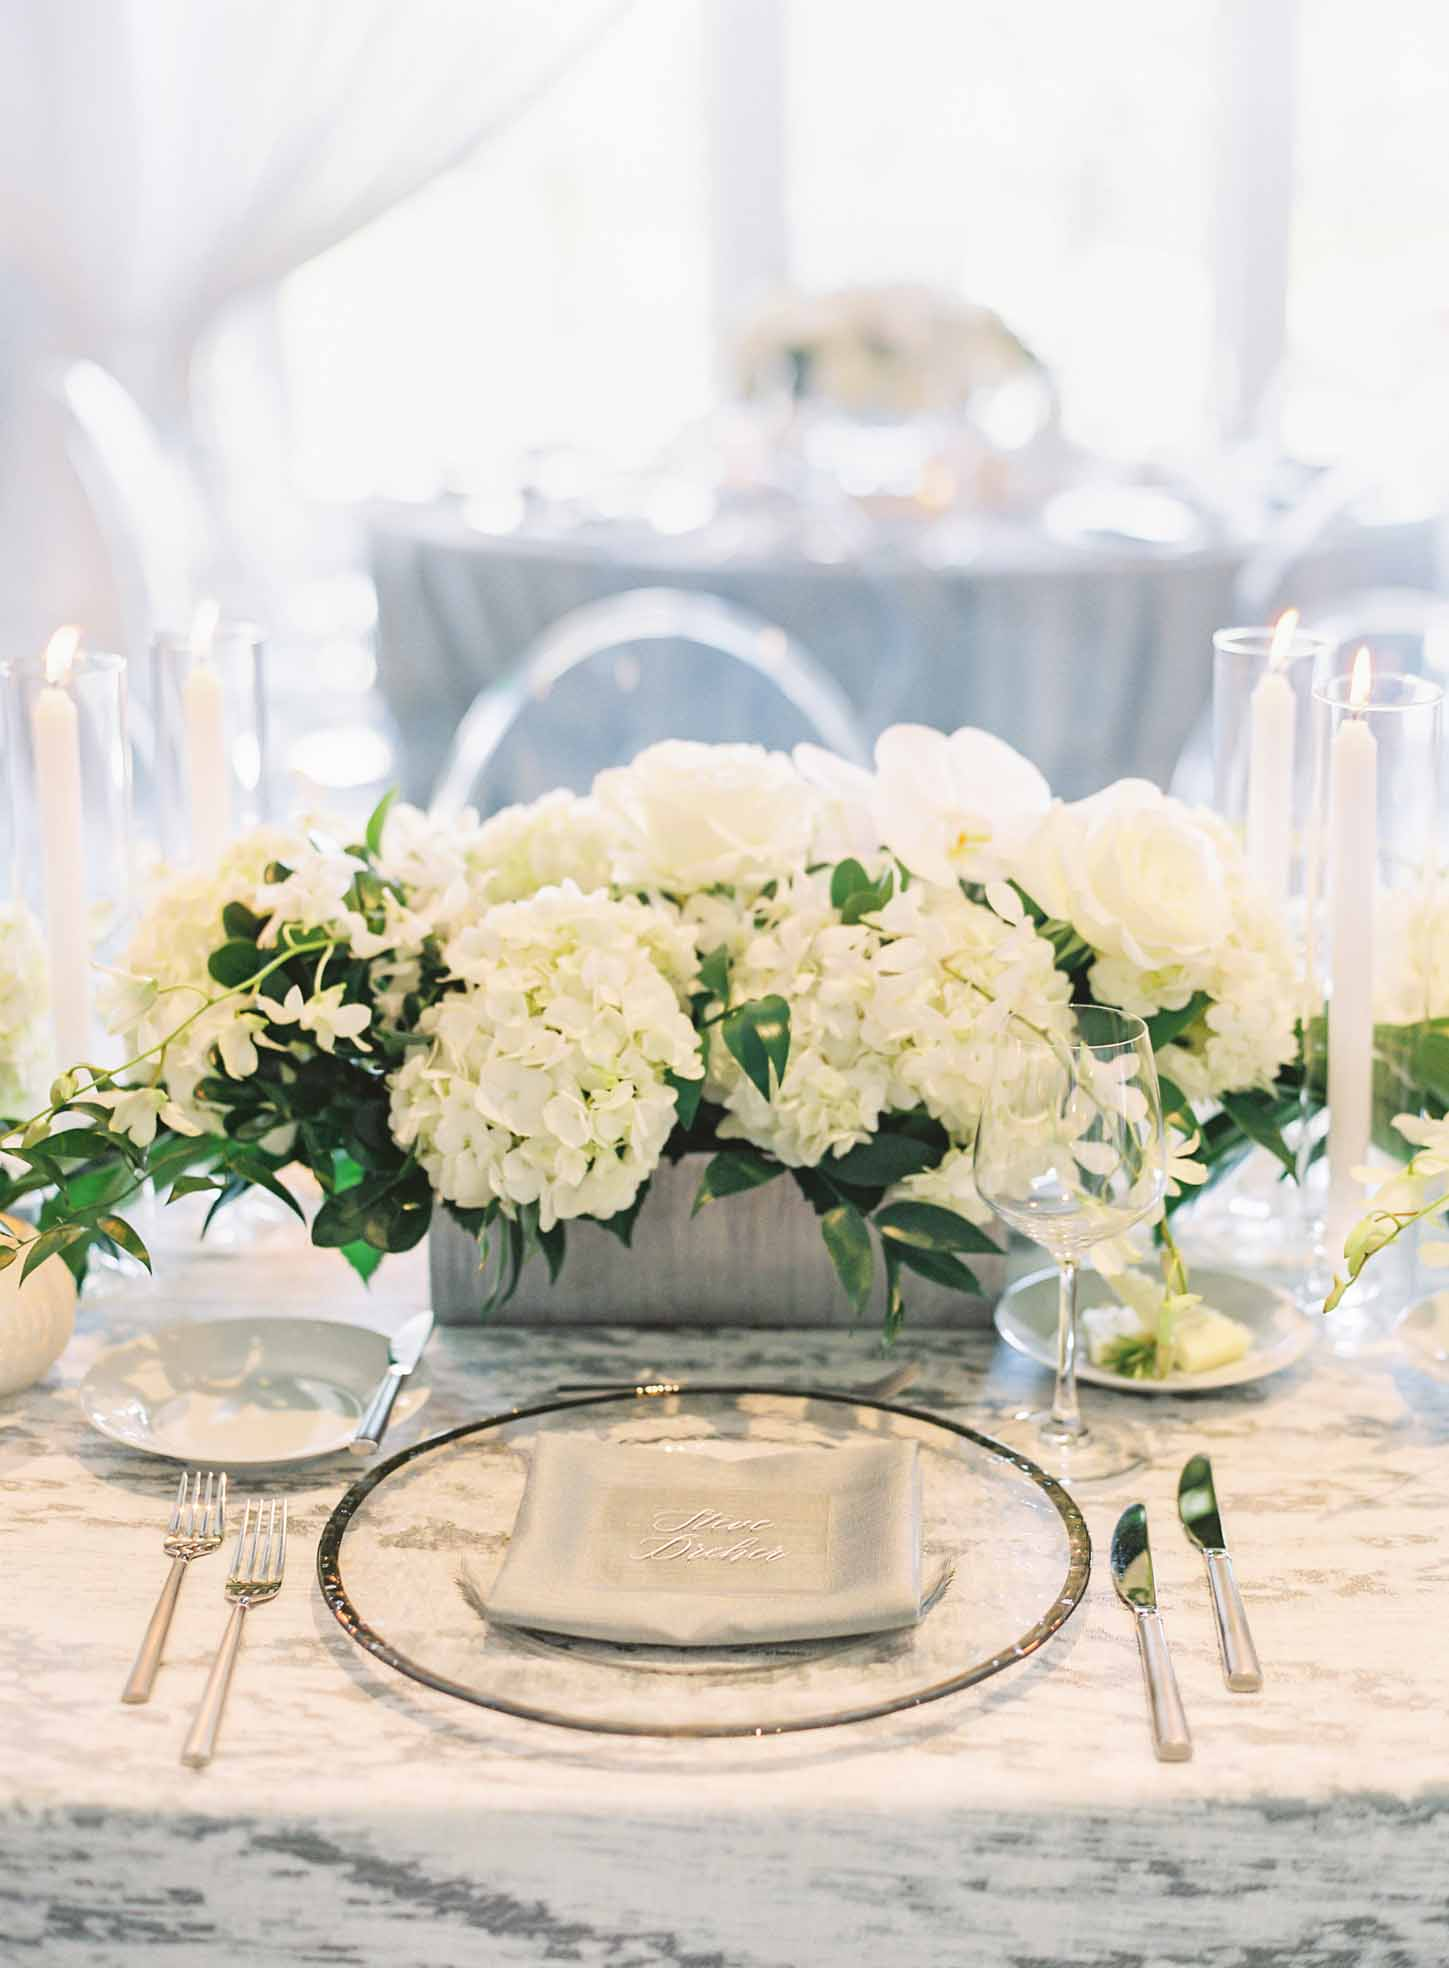 Centerpiece of white flowers with greenery in silver vase, a silver rimmed glass charher plate, clear lucite chairs - White and Green Wedding - by Flora Nova Design